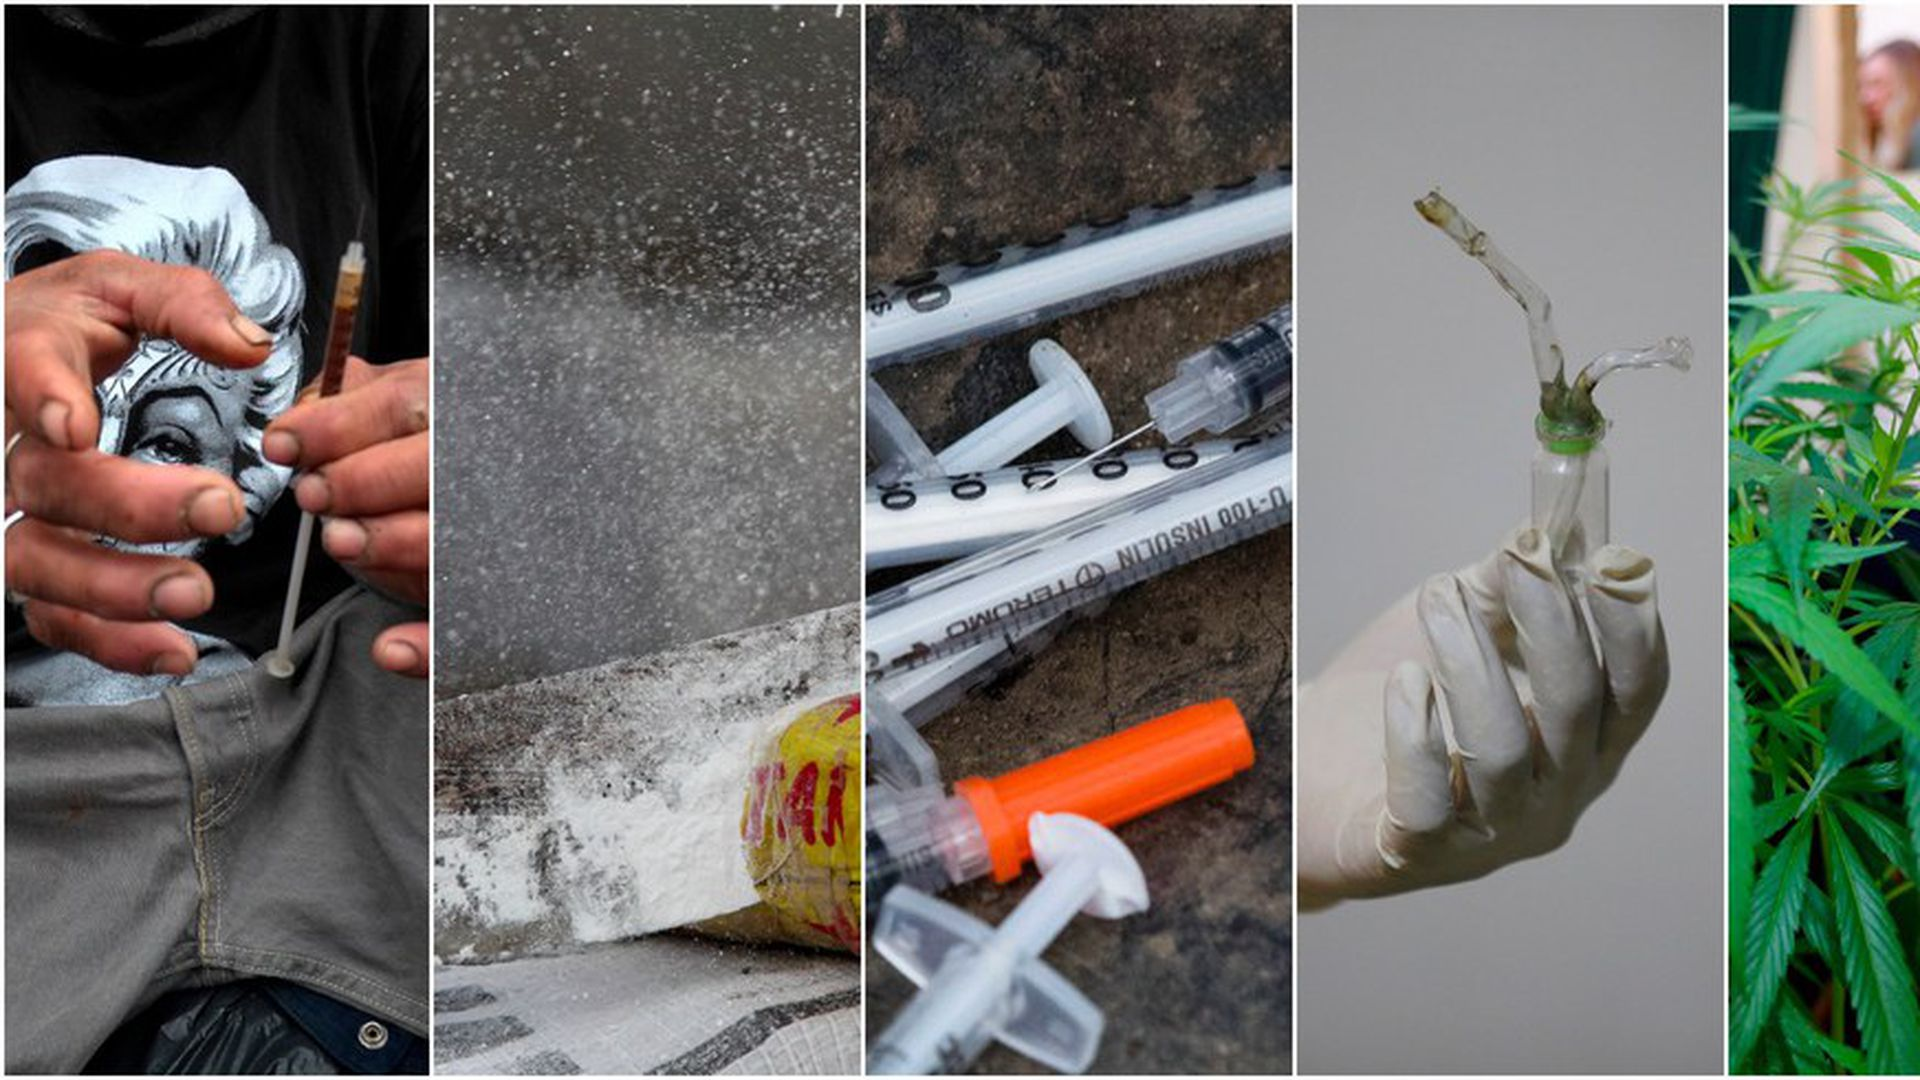 The drugs that could get you the harshest prison sentences